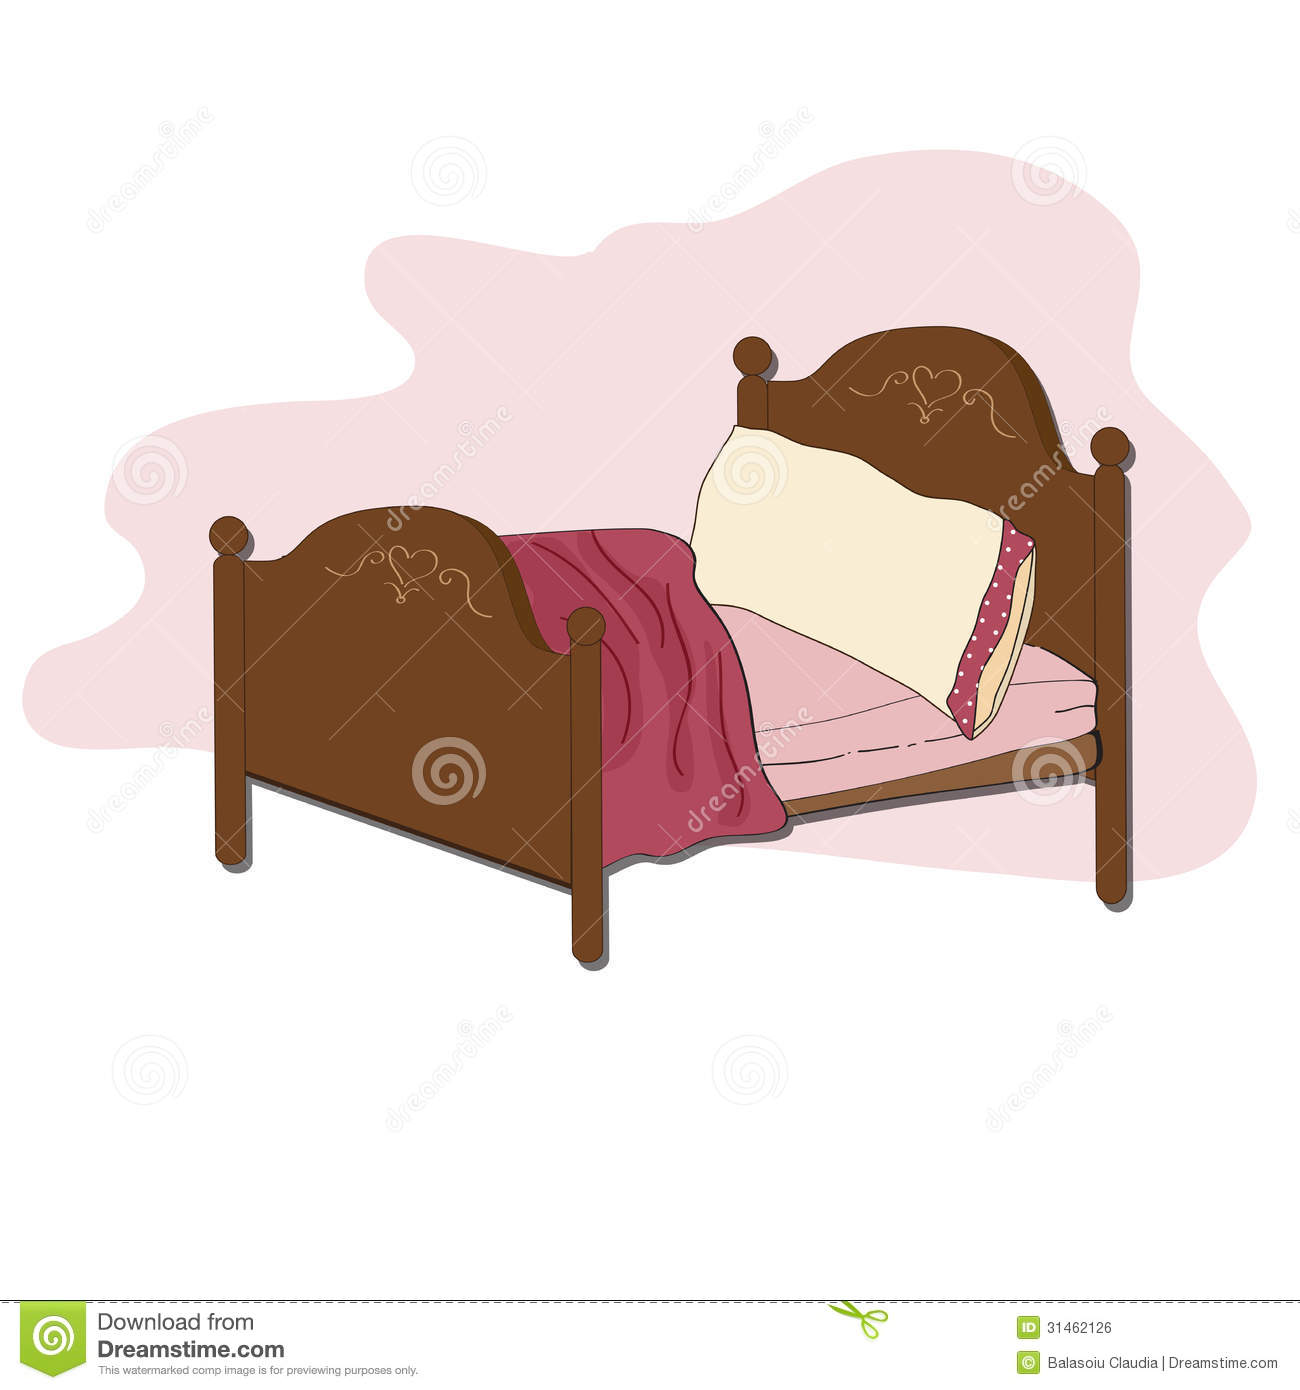 illustration Cartoon wooden bed pics, Stock Photos all sites